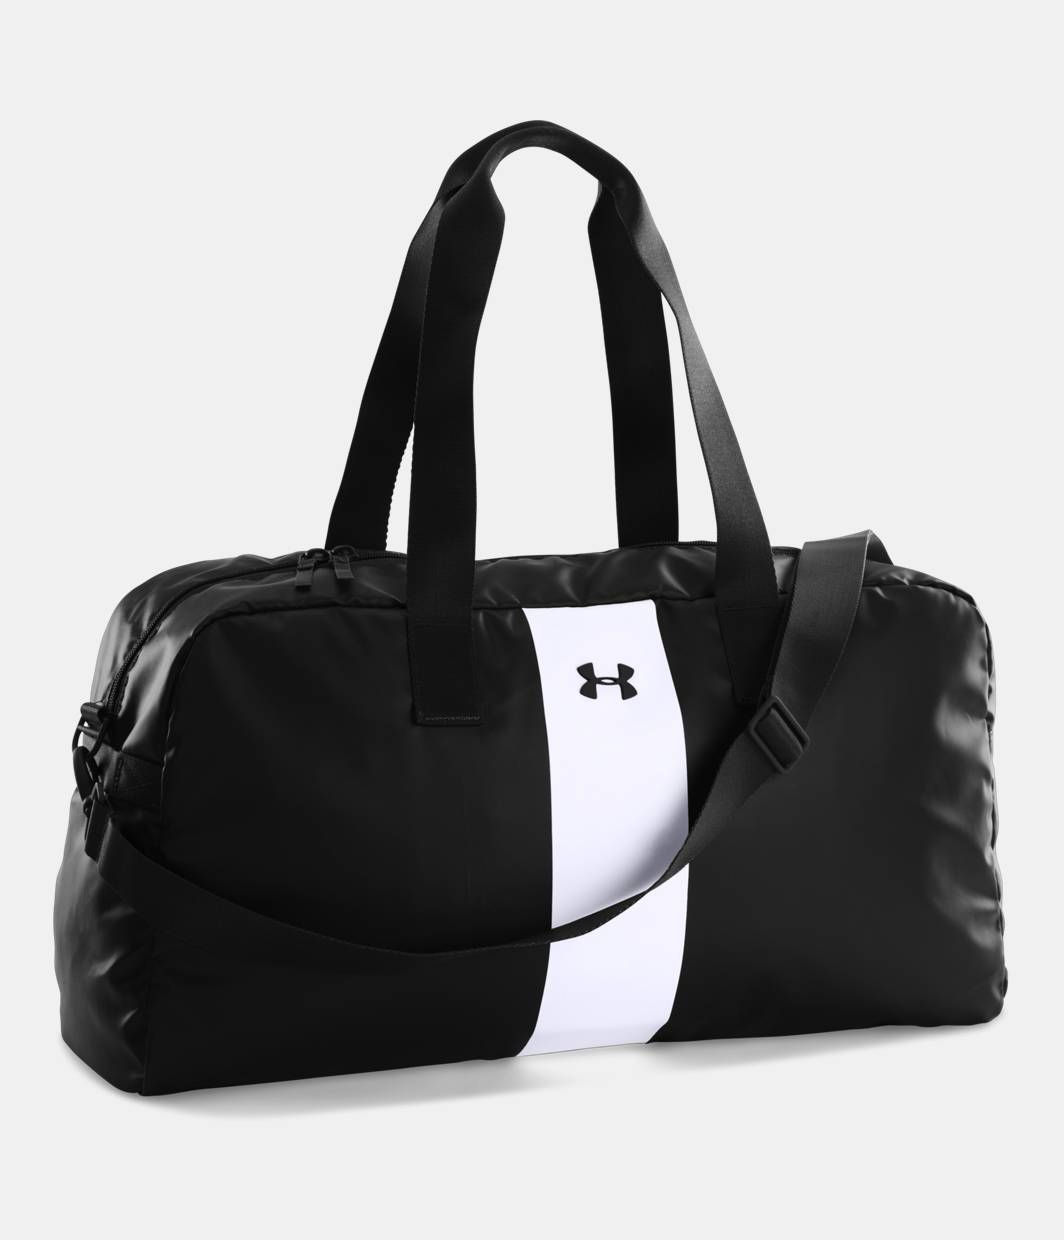 f165aed05c Women's UA Universal Duffle | Under Armour US | FIT FRILLS | Womens ...